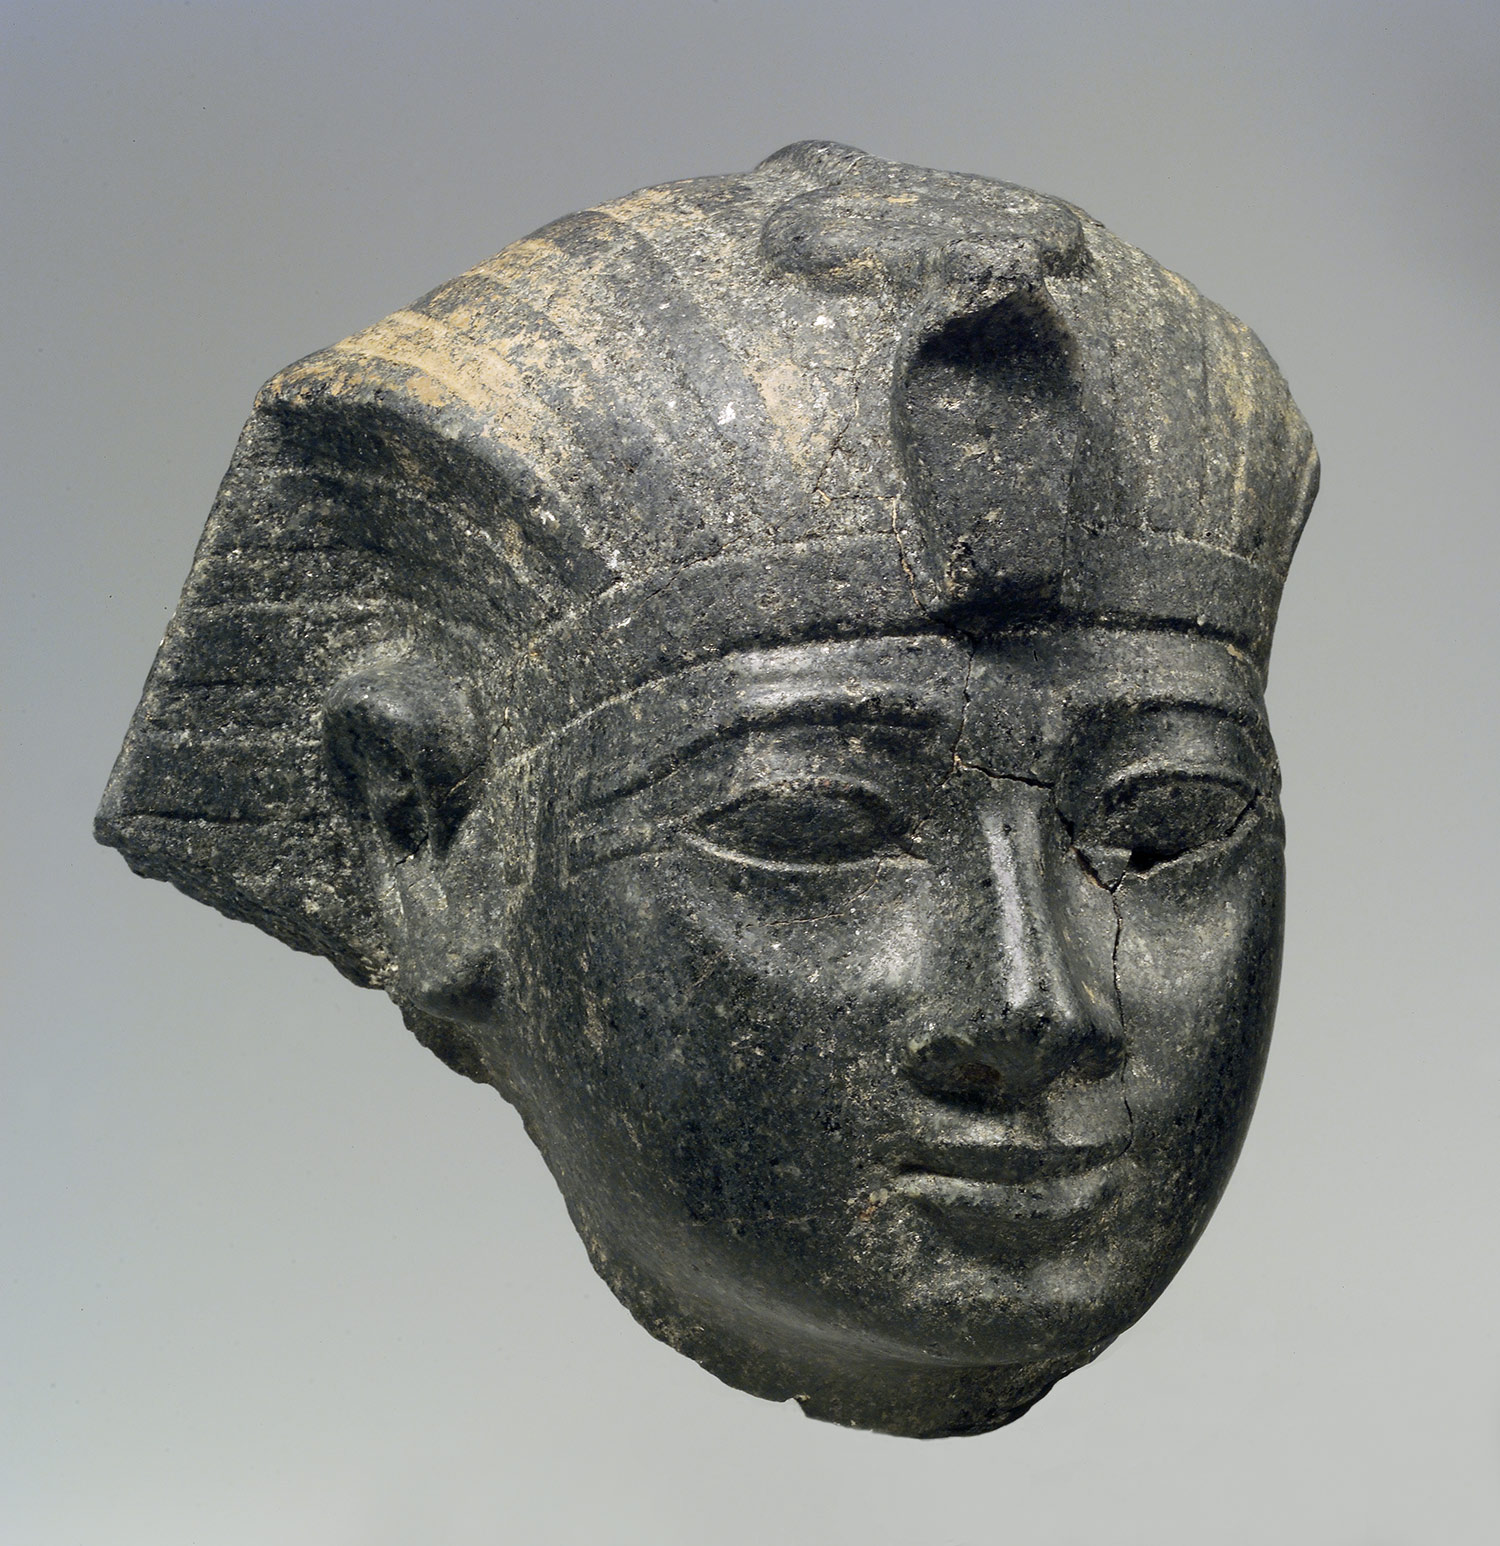 Head of Amenhotep II [Egyptian] (